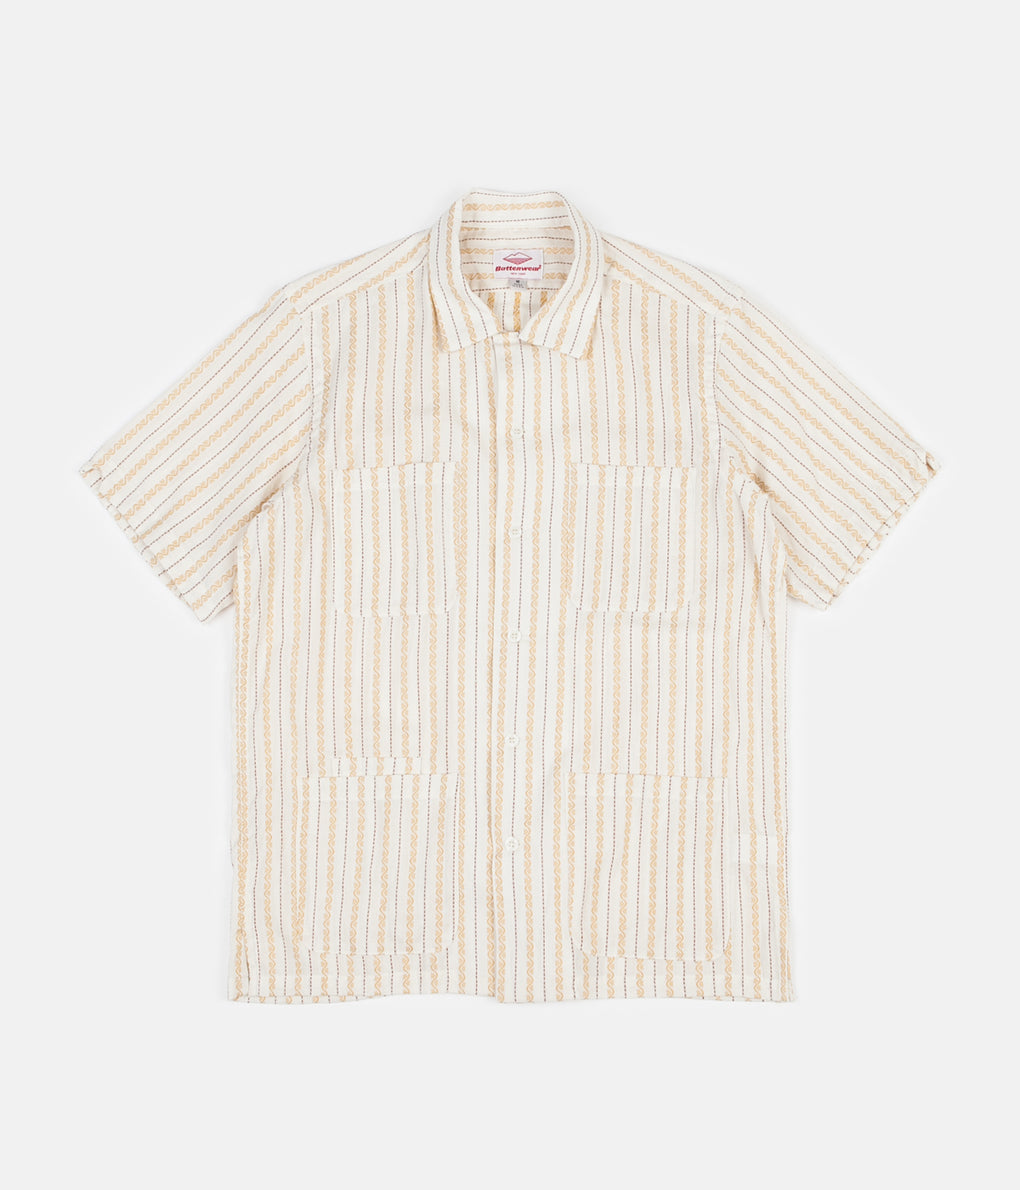 Battenwear Five Pocket Island Shirt - Ivory